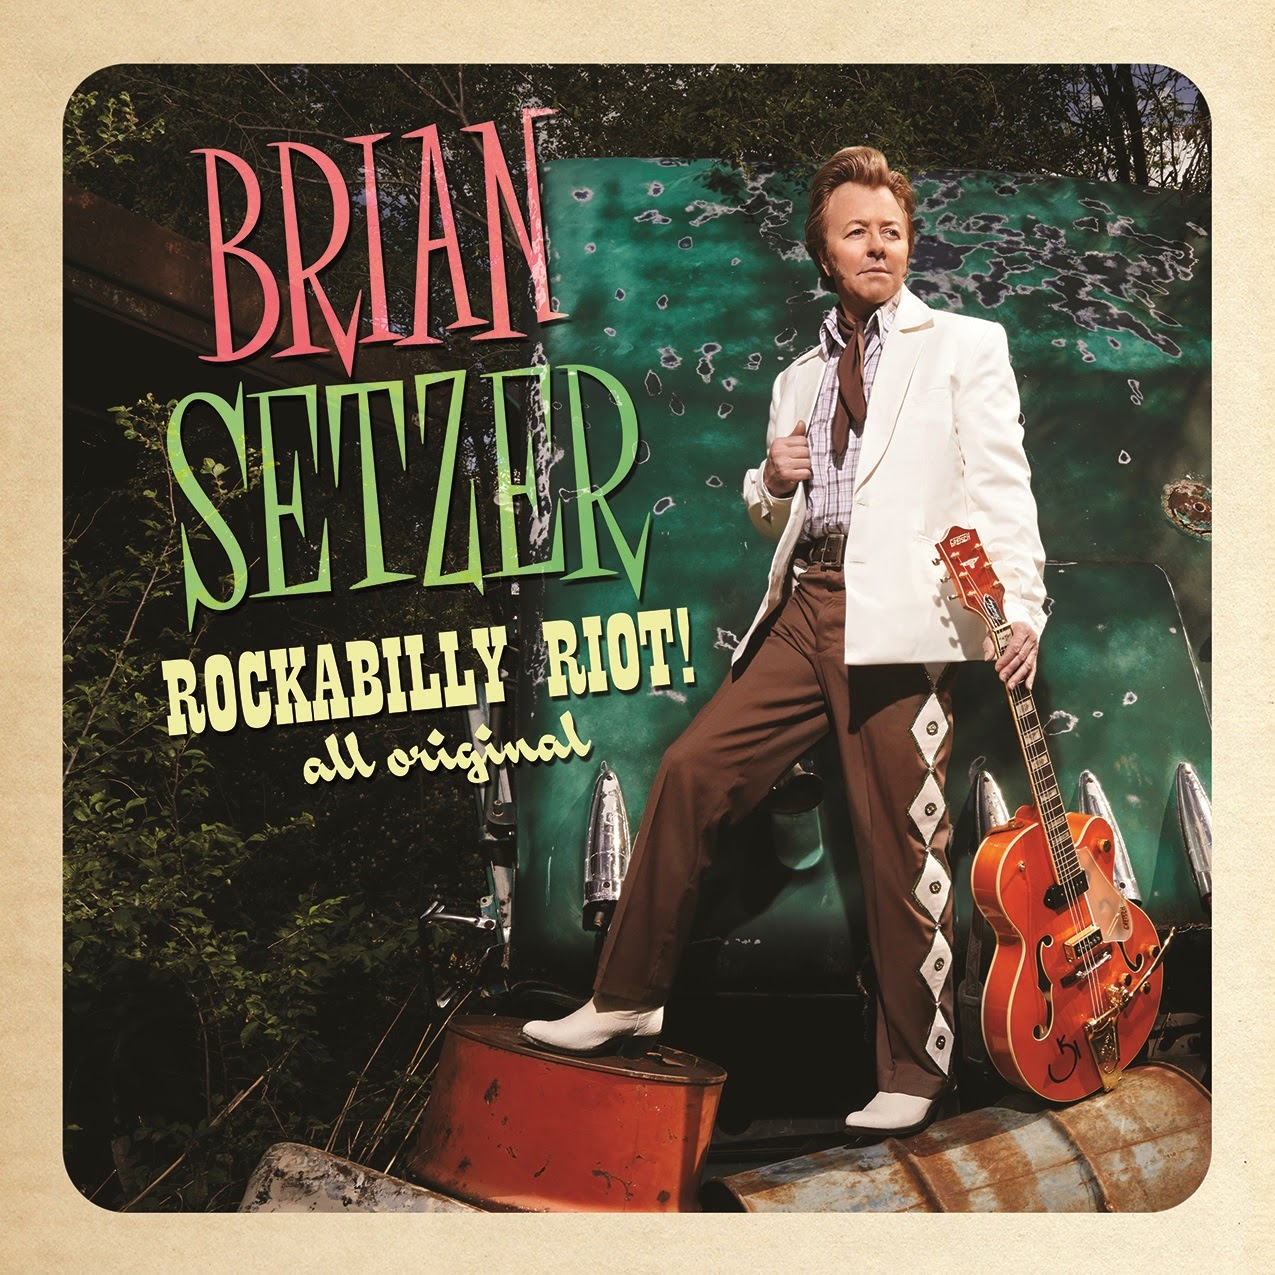 Rockabilly Riot! All Original, Nytt album med Brian Setzer